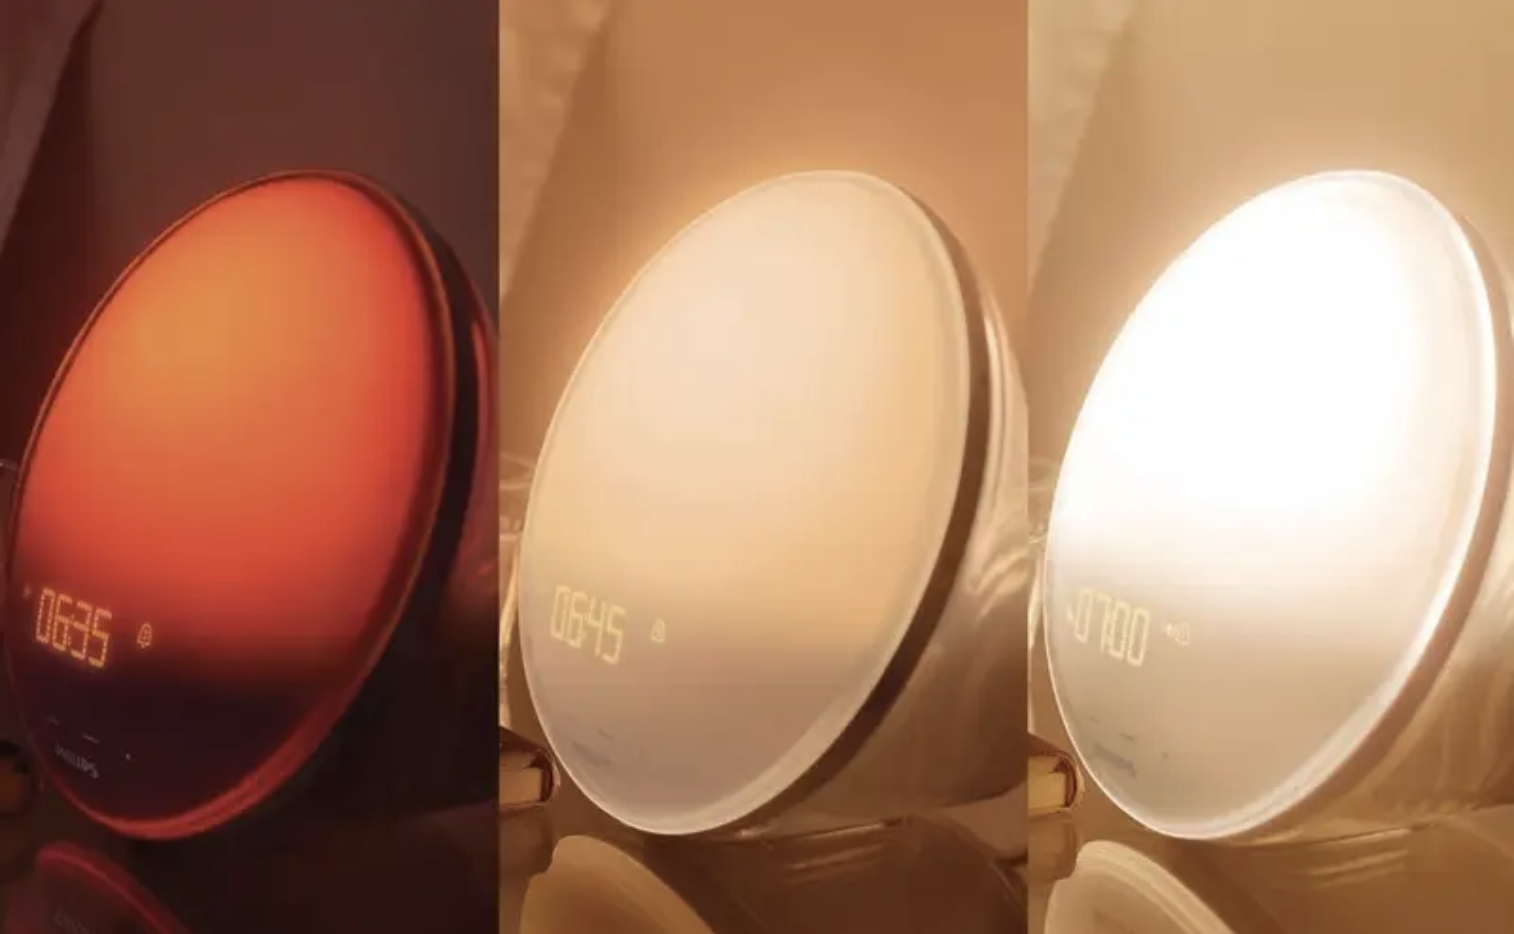 A sunrise alarm clock in three stages of lighting up from dim to brighter to brightest over the course of a half hour